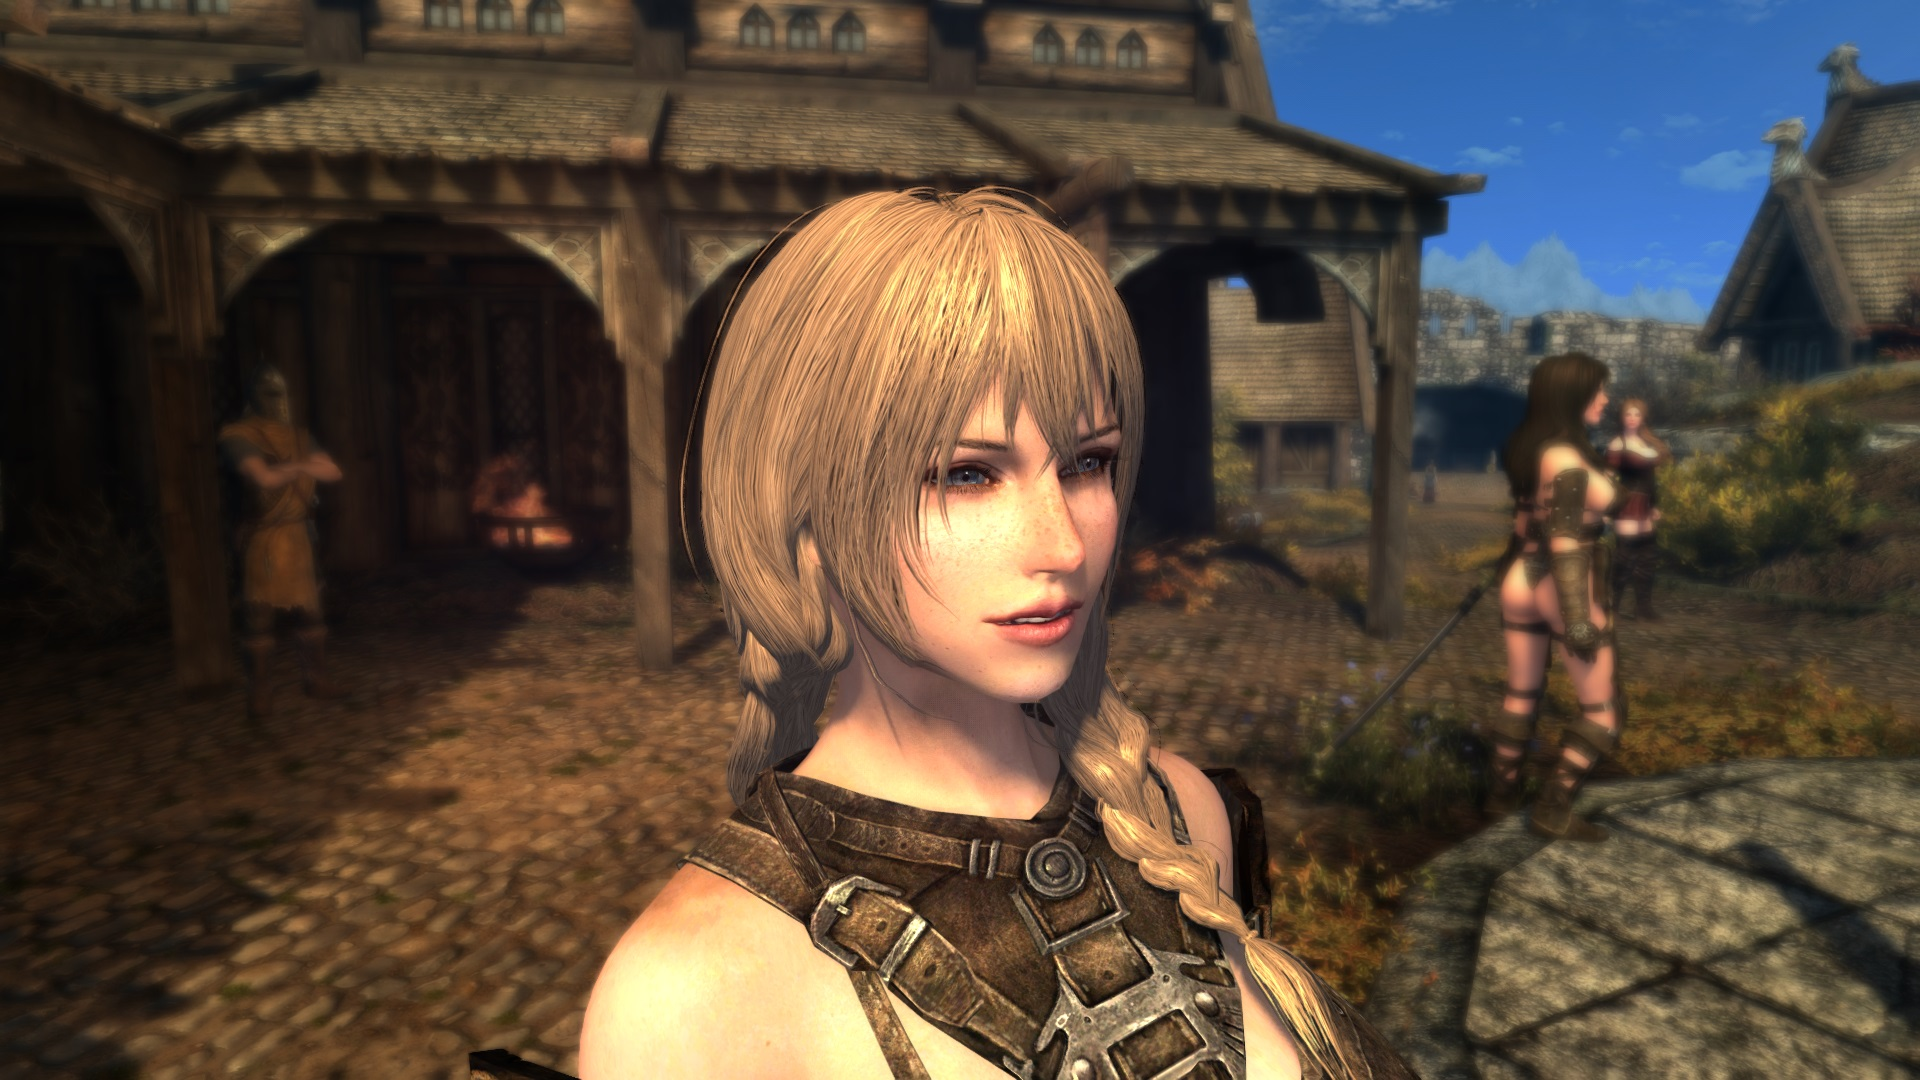 Skyrim SE  I want my hair texture to be realistic.